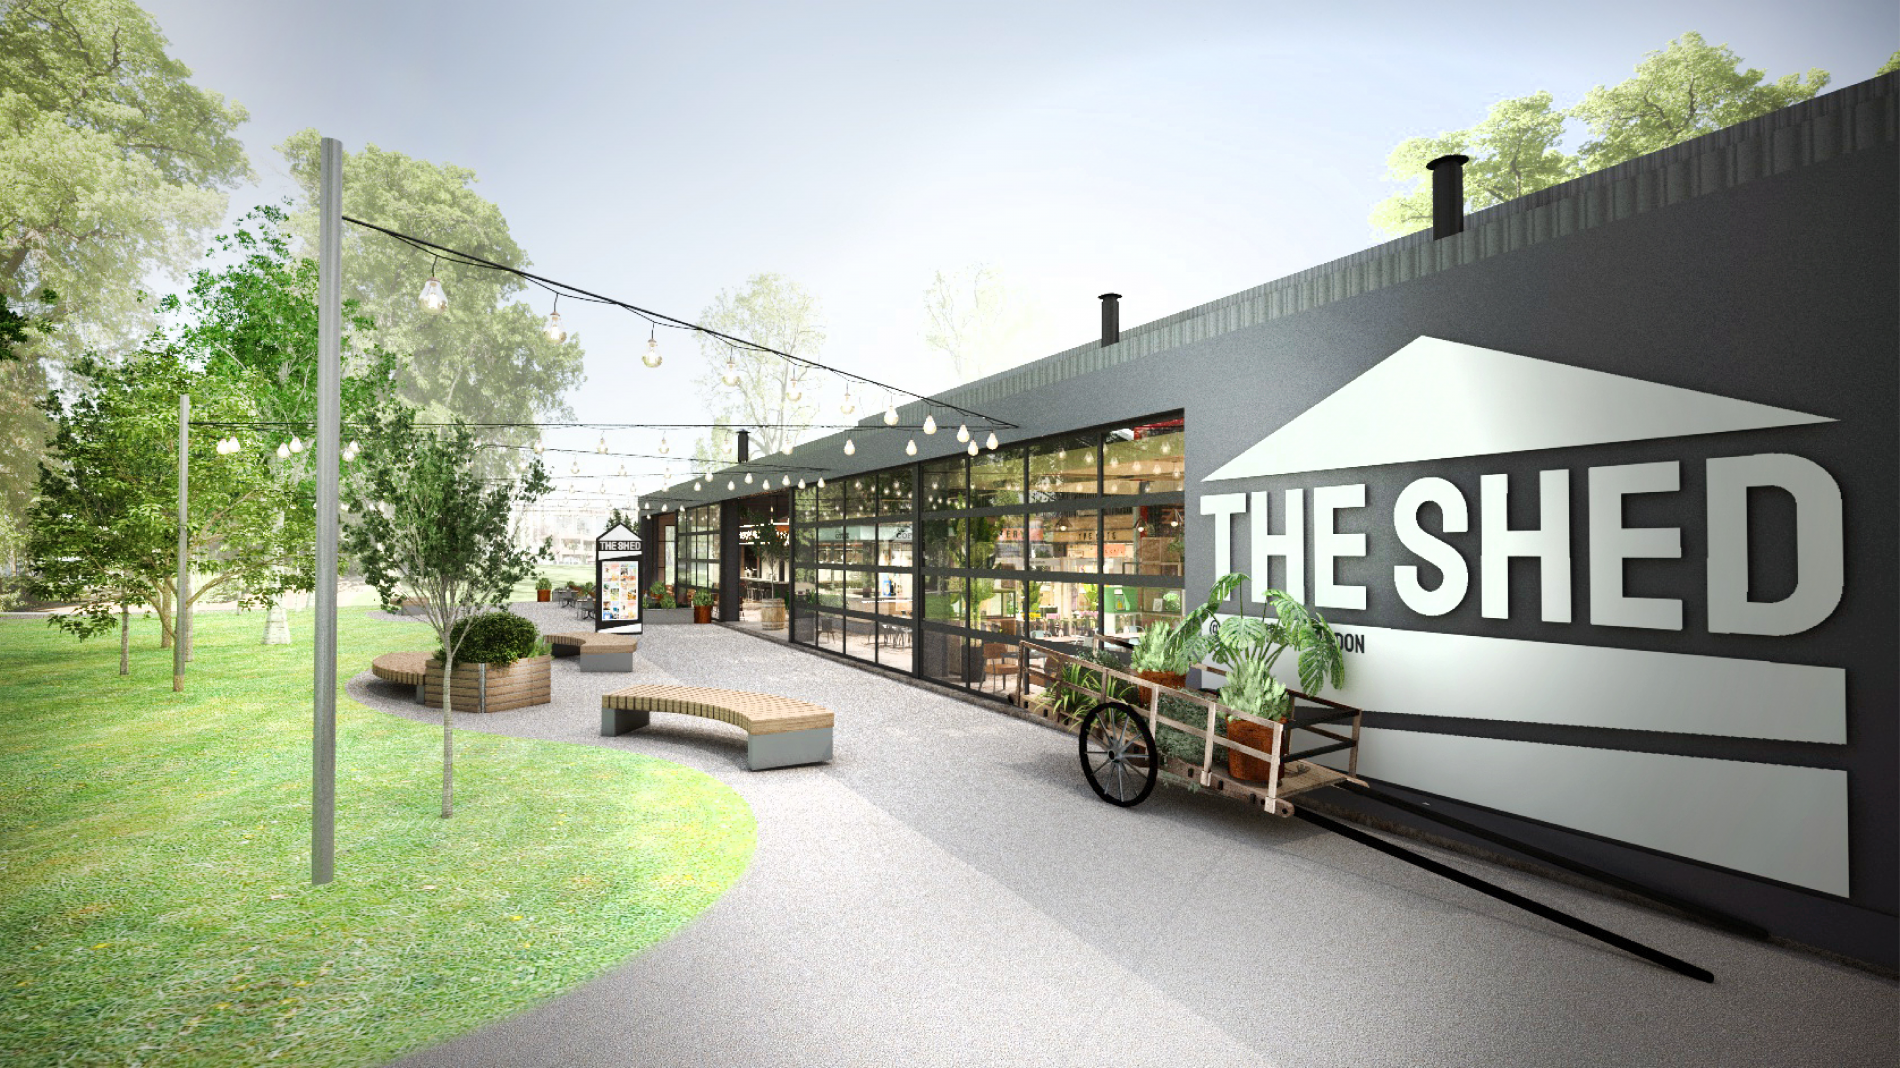 The Shed exterior design visual